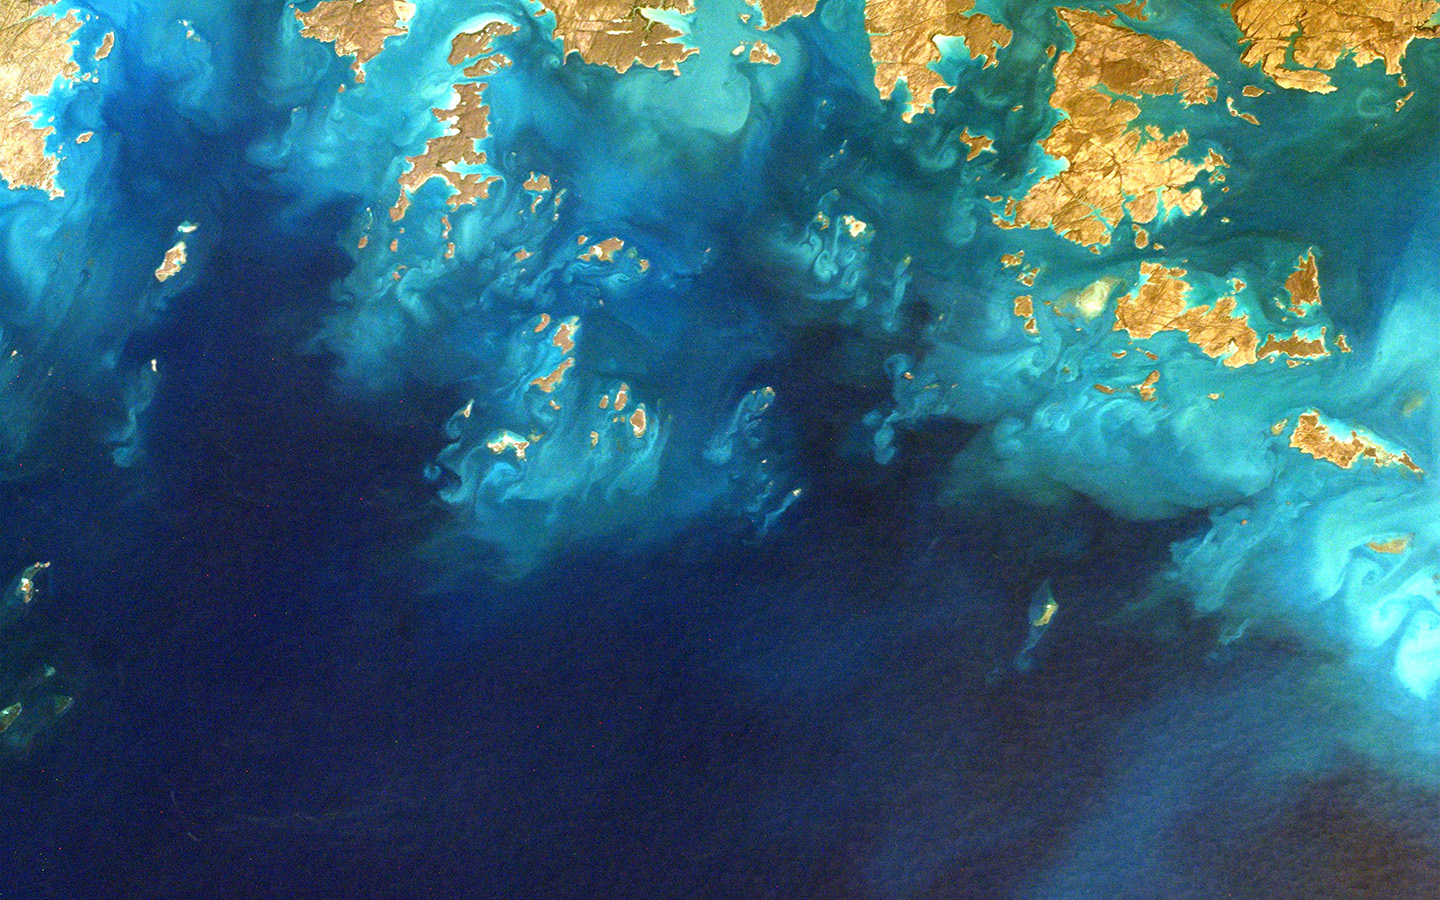 How To Change Wallpaper On Iphone 5c Mz56 Sea From Sky Earthview Art Nature